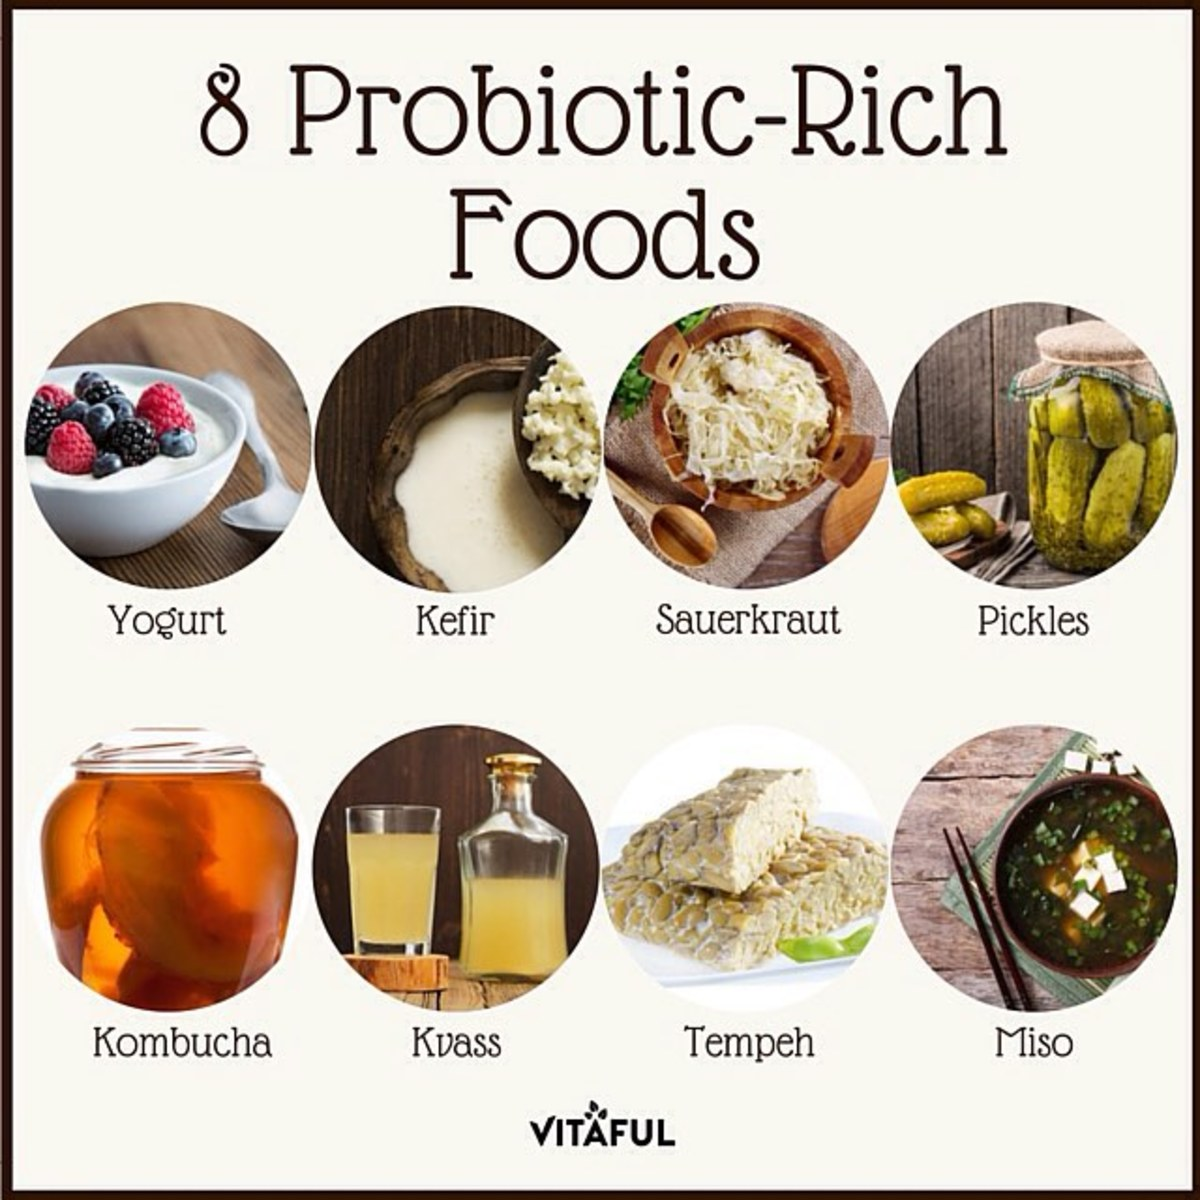 20 Benefits of Taking Probiotics - Lactobacillus Acidophilus Supplements